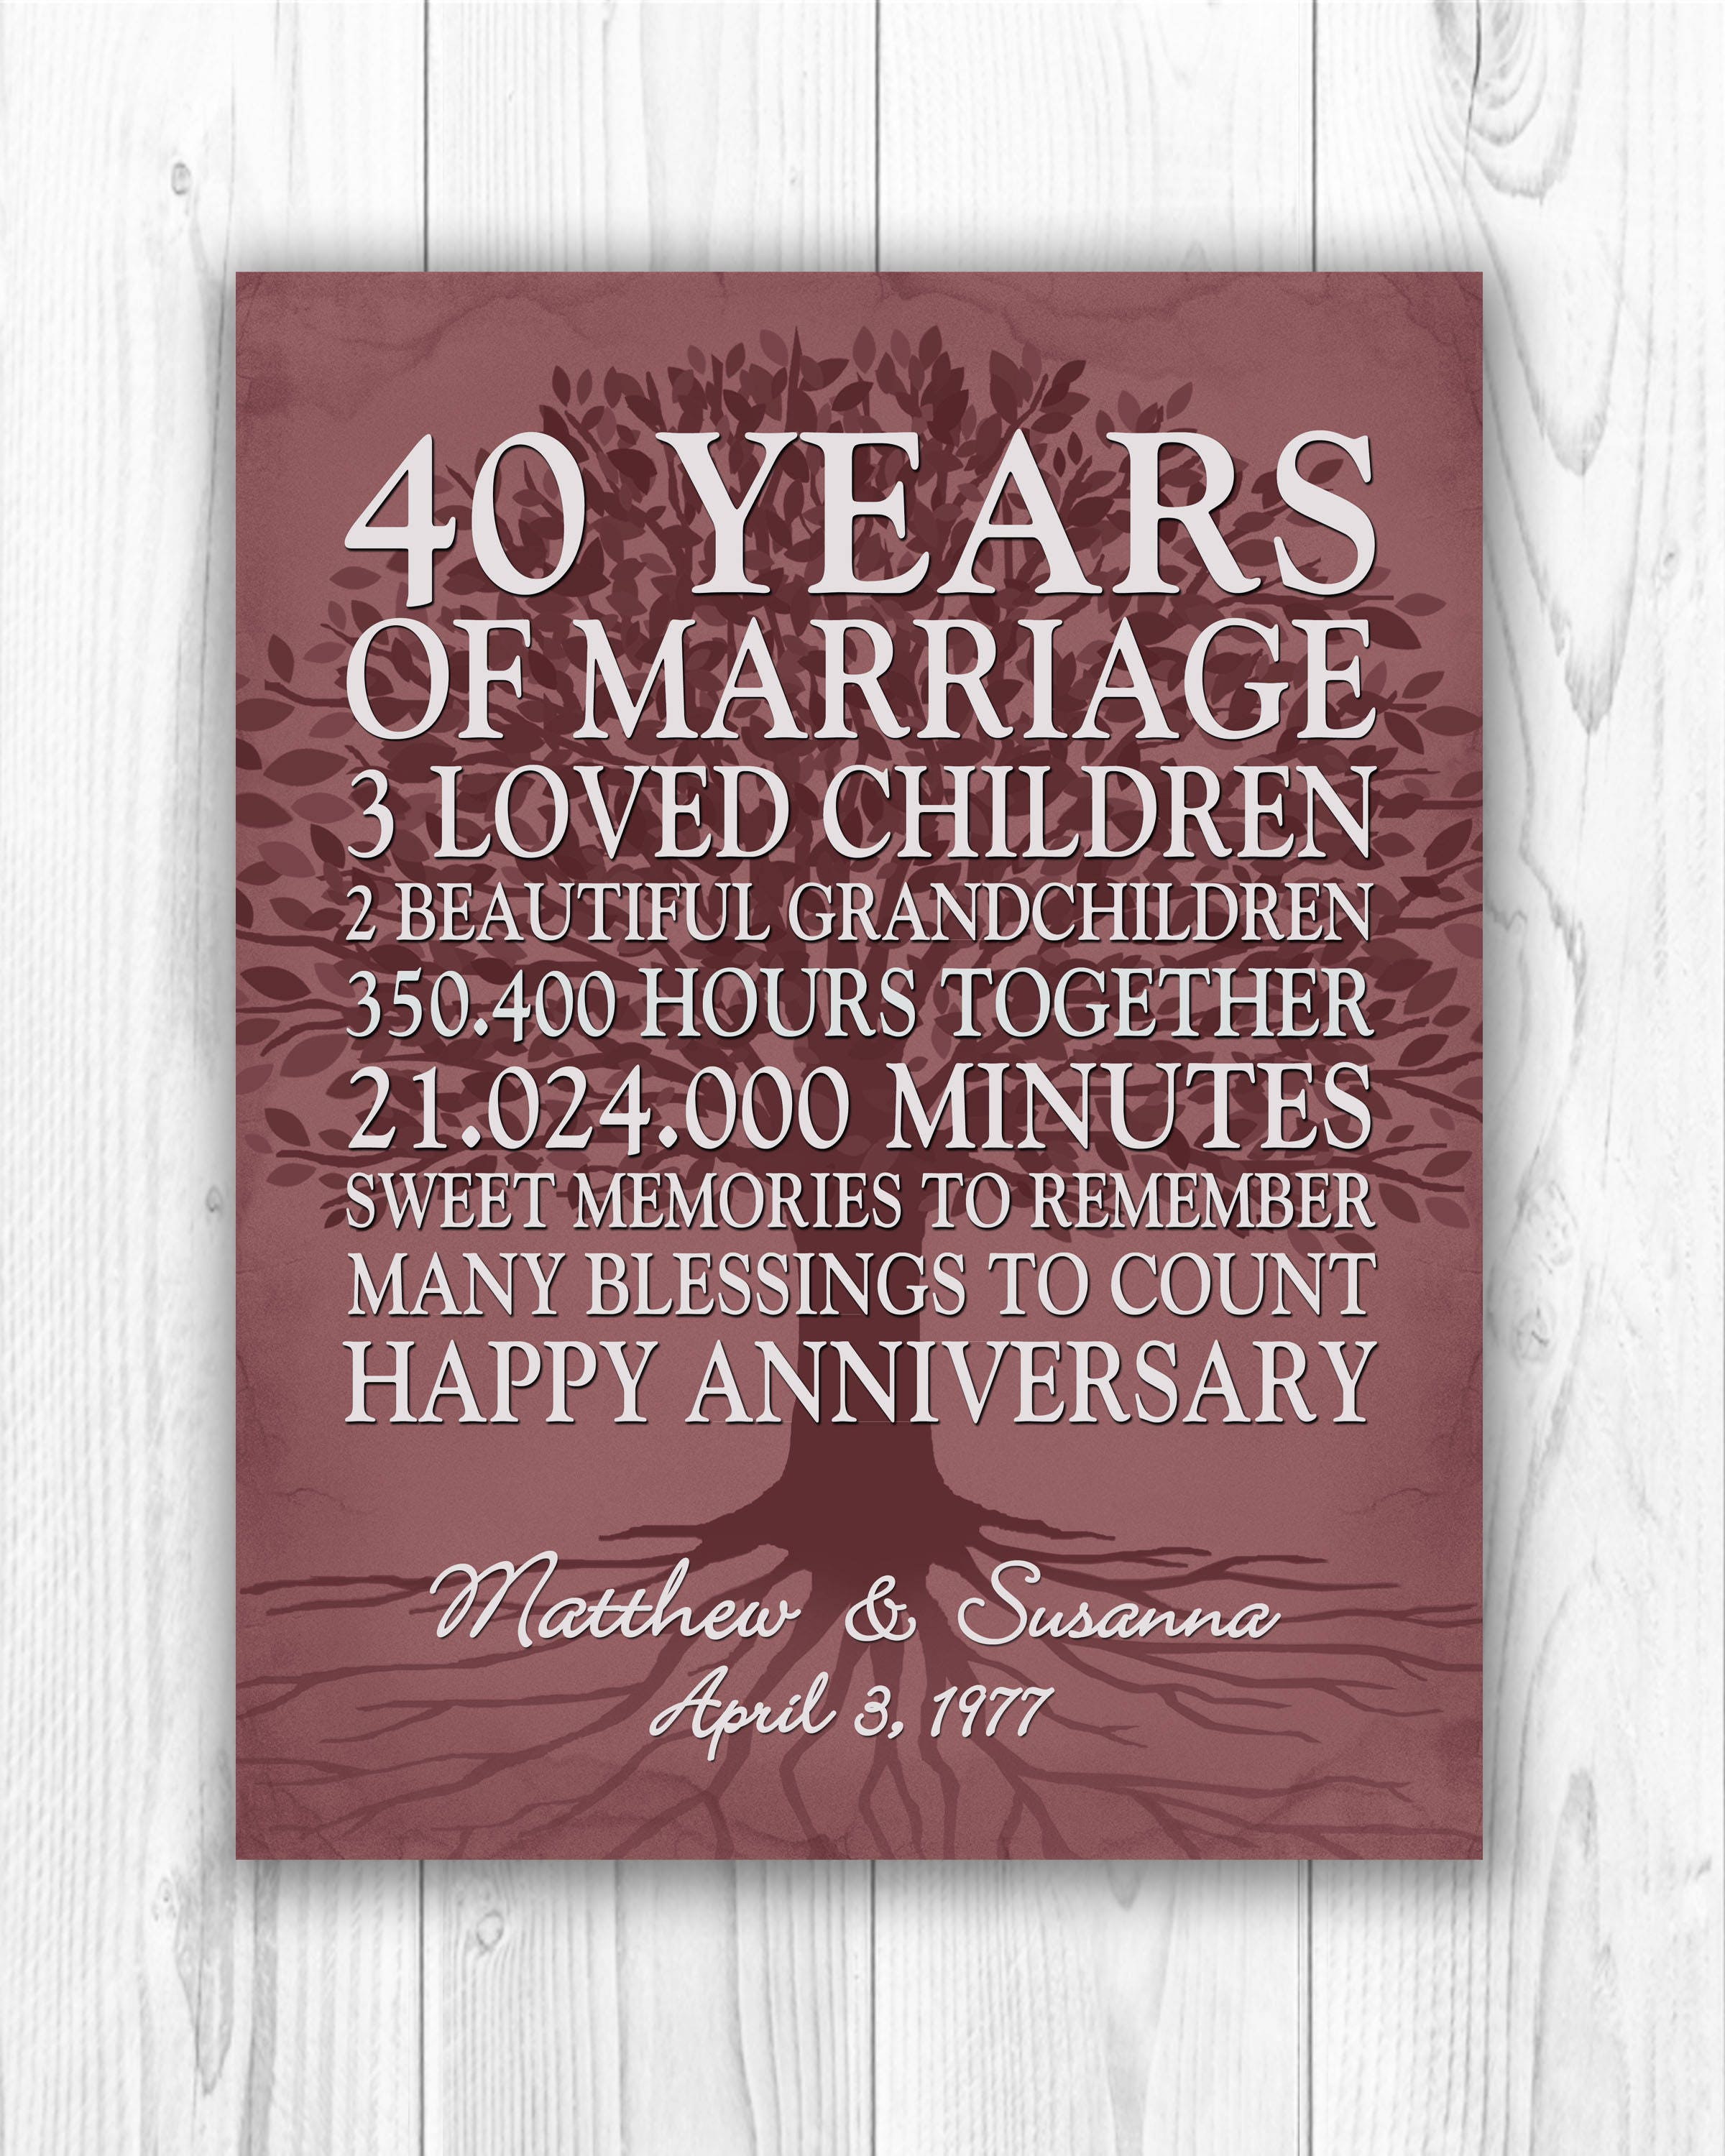 40th Wedding Anniversary Gift.40th Wedding Anniversary Gift For Parents Personalized 40 Years Ruby Anniversary Gift Custom 40th Anniversary Gift Digital Printable File